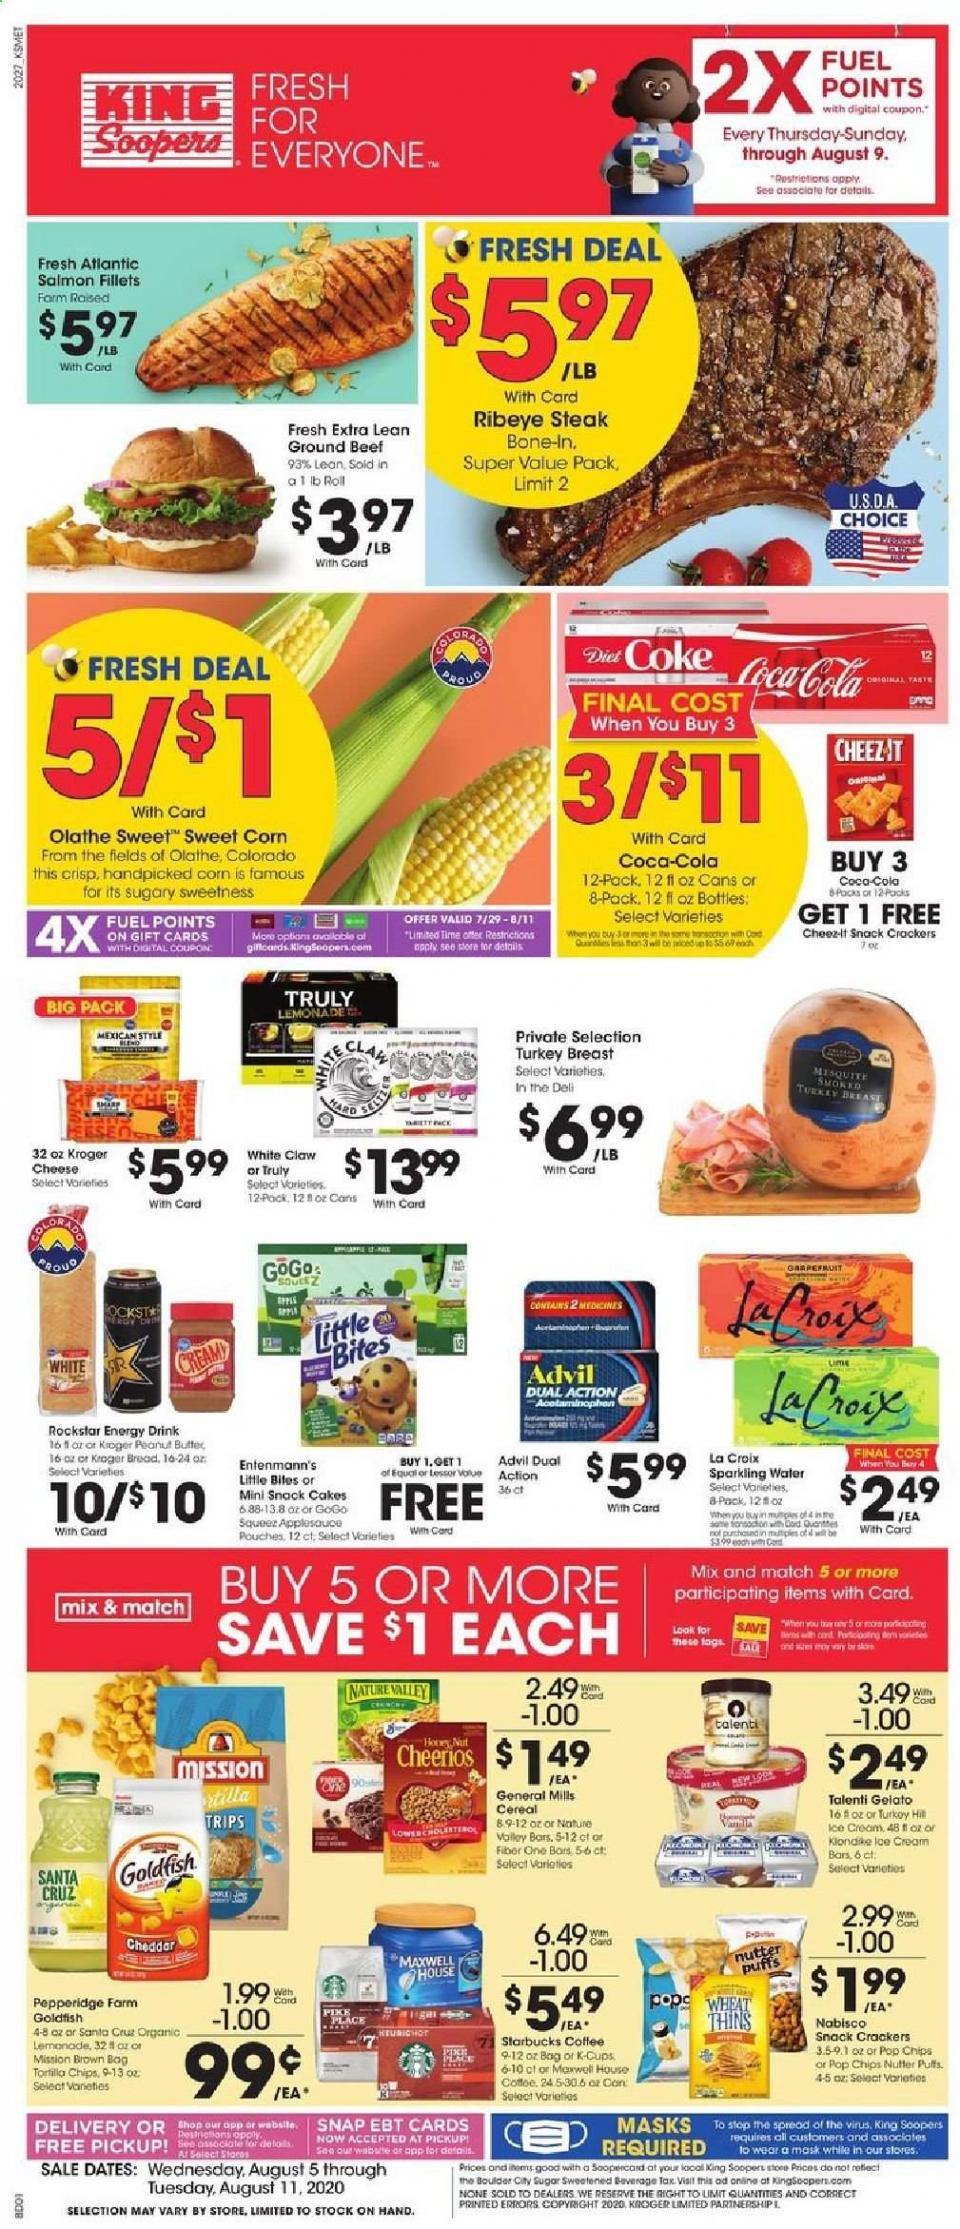 king soopers august weekly ad valid from aug 5 11 2020